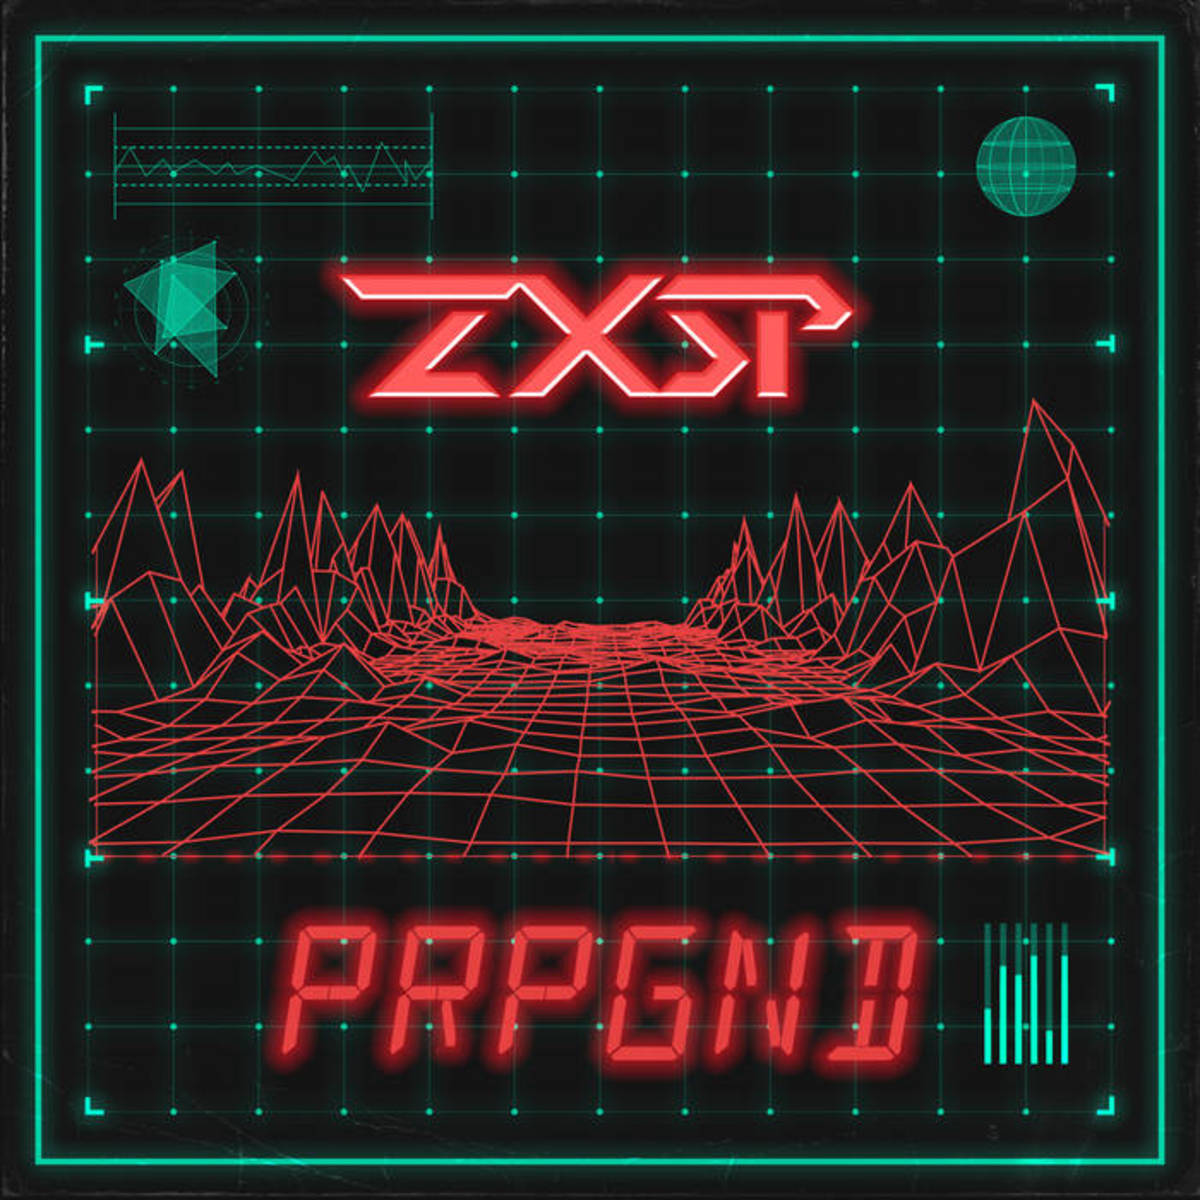 synth-album-review-prpgnd-by-zxsp